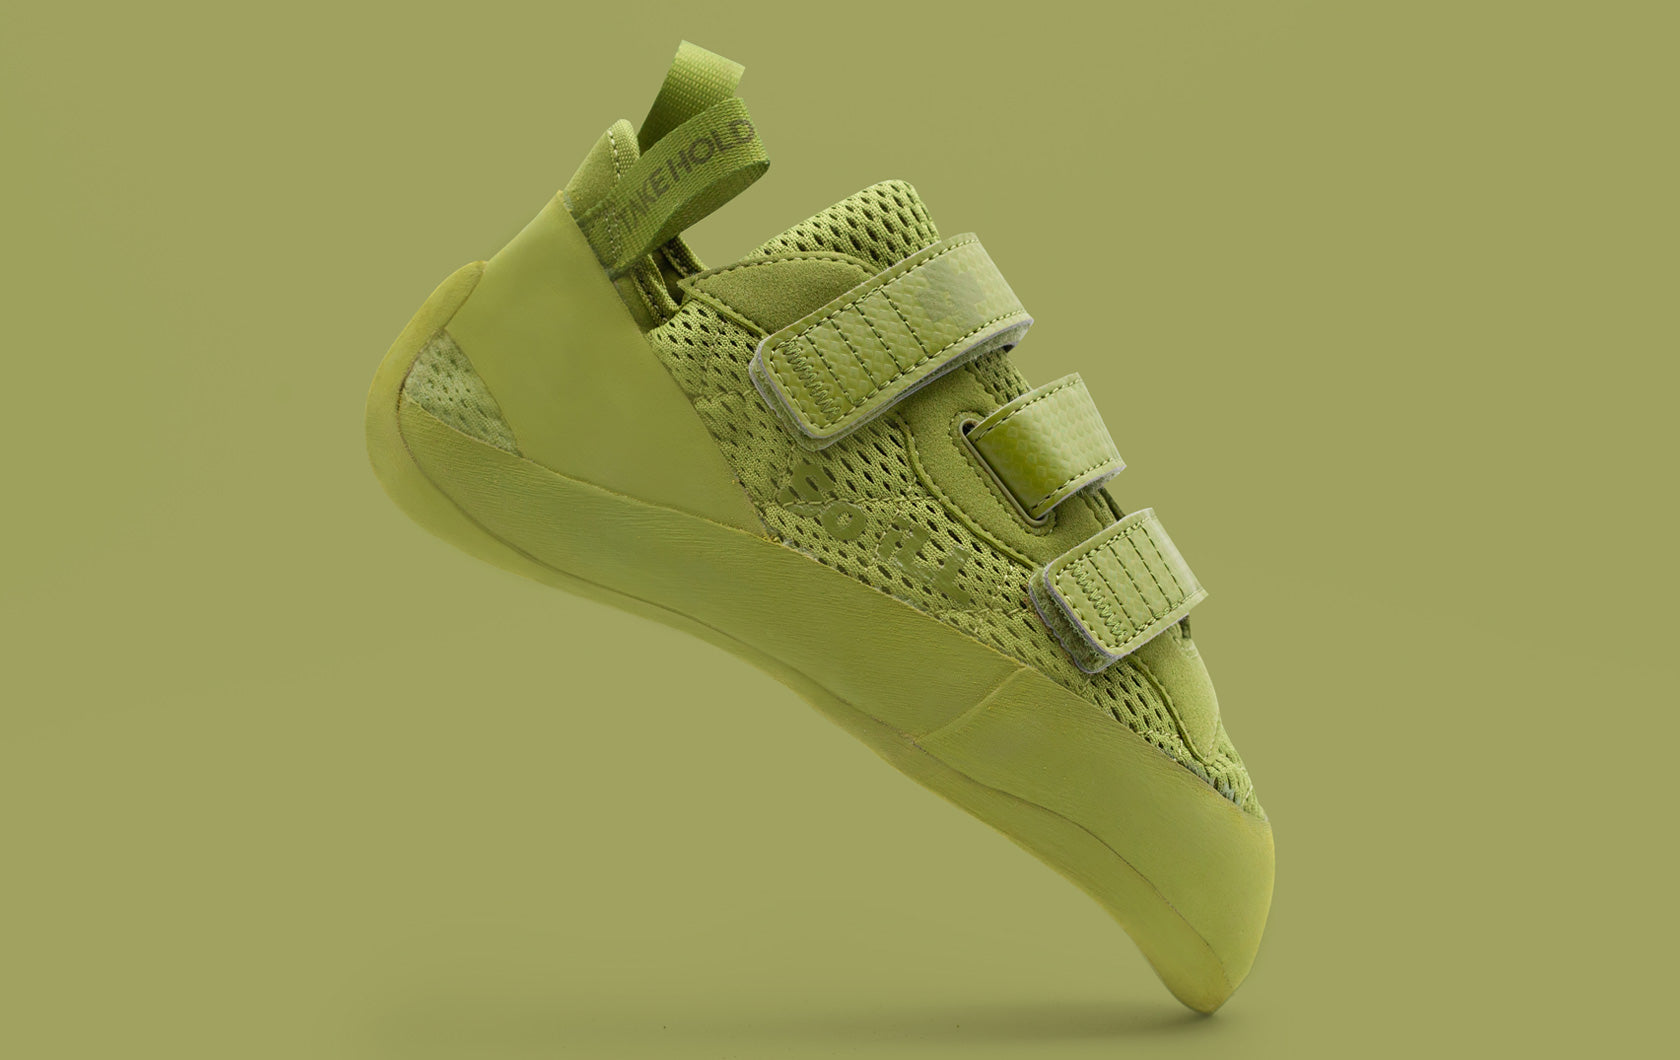 So iLL Olive Green Runner LV Climbing shoe on olive colored background